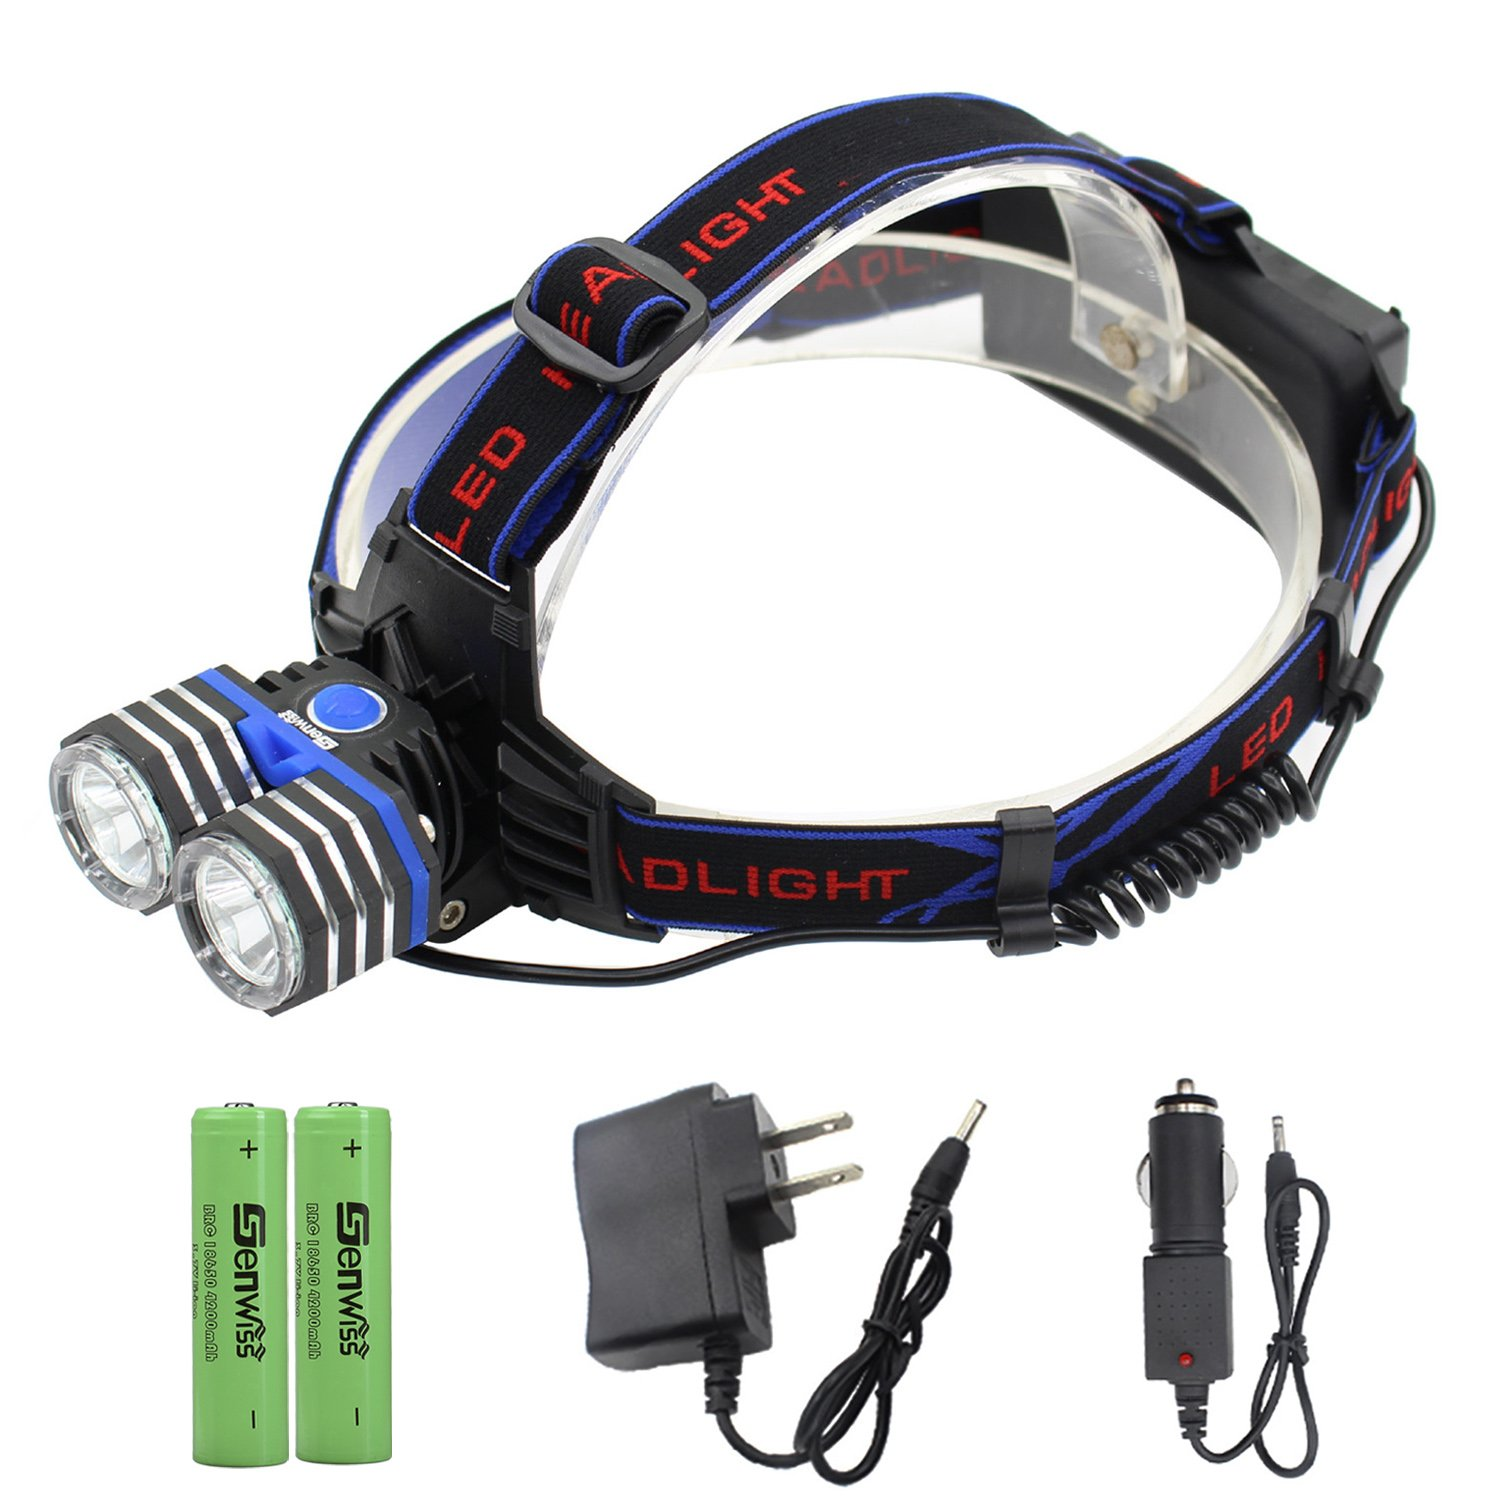 Rechargeable LED Headlamp - Genwiss Head Lamp 2000 Lumen XM-L2 Headlight Outdoor Waterproof Super Head Light with USB Port for Phone Charging as Power Bank,2 x Batteries, Car Charger, Wall Charger